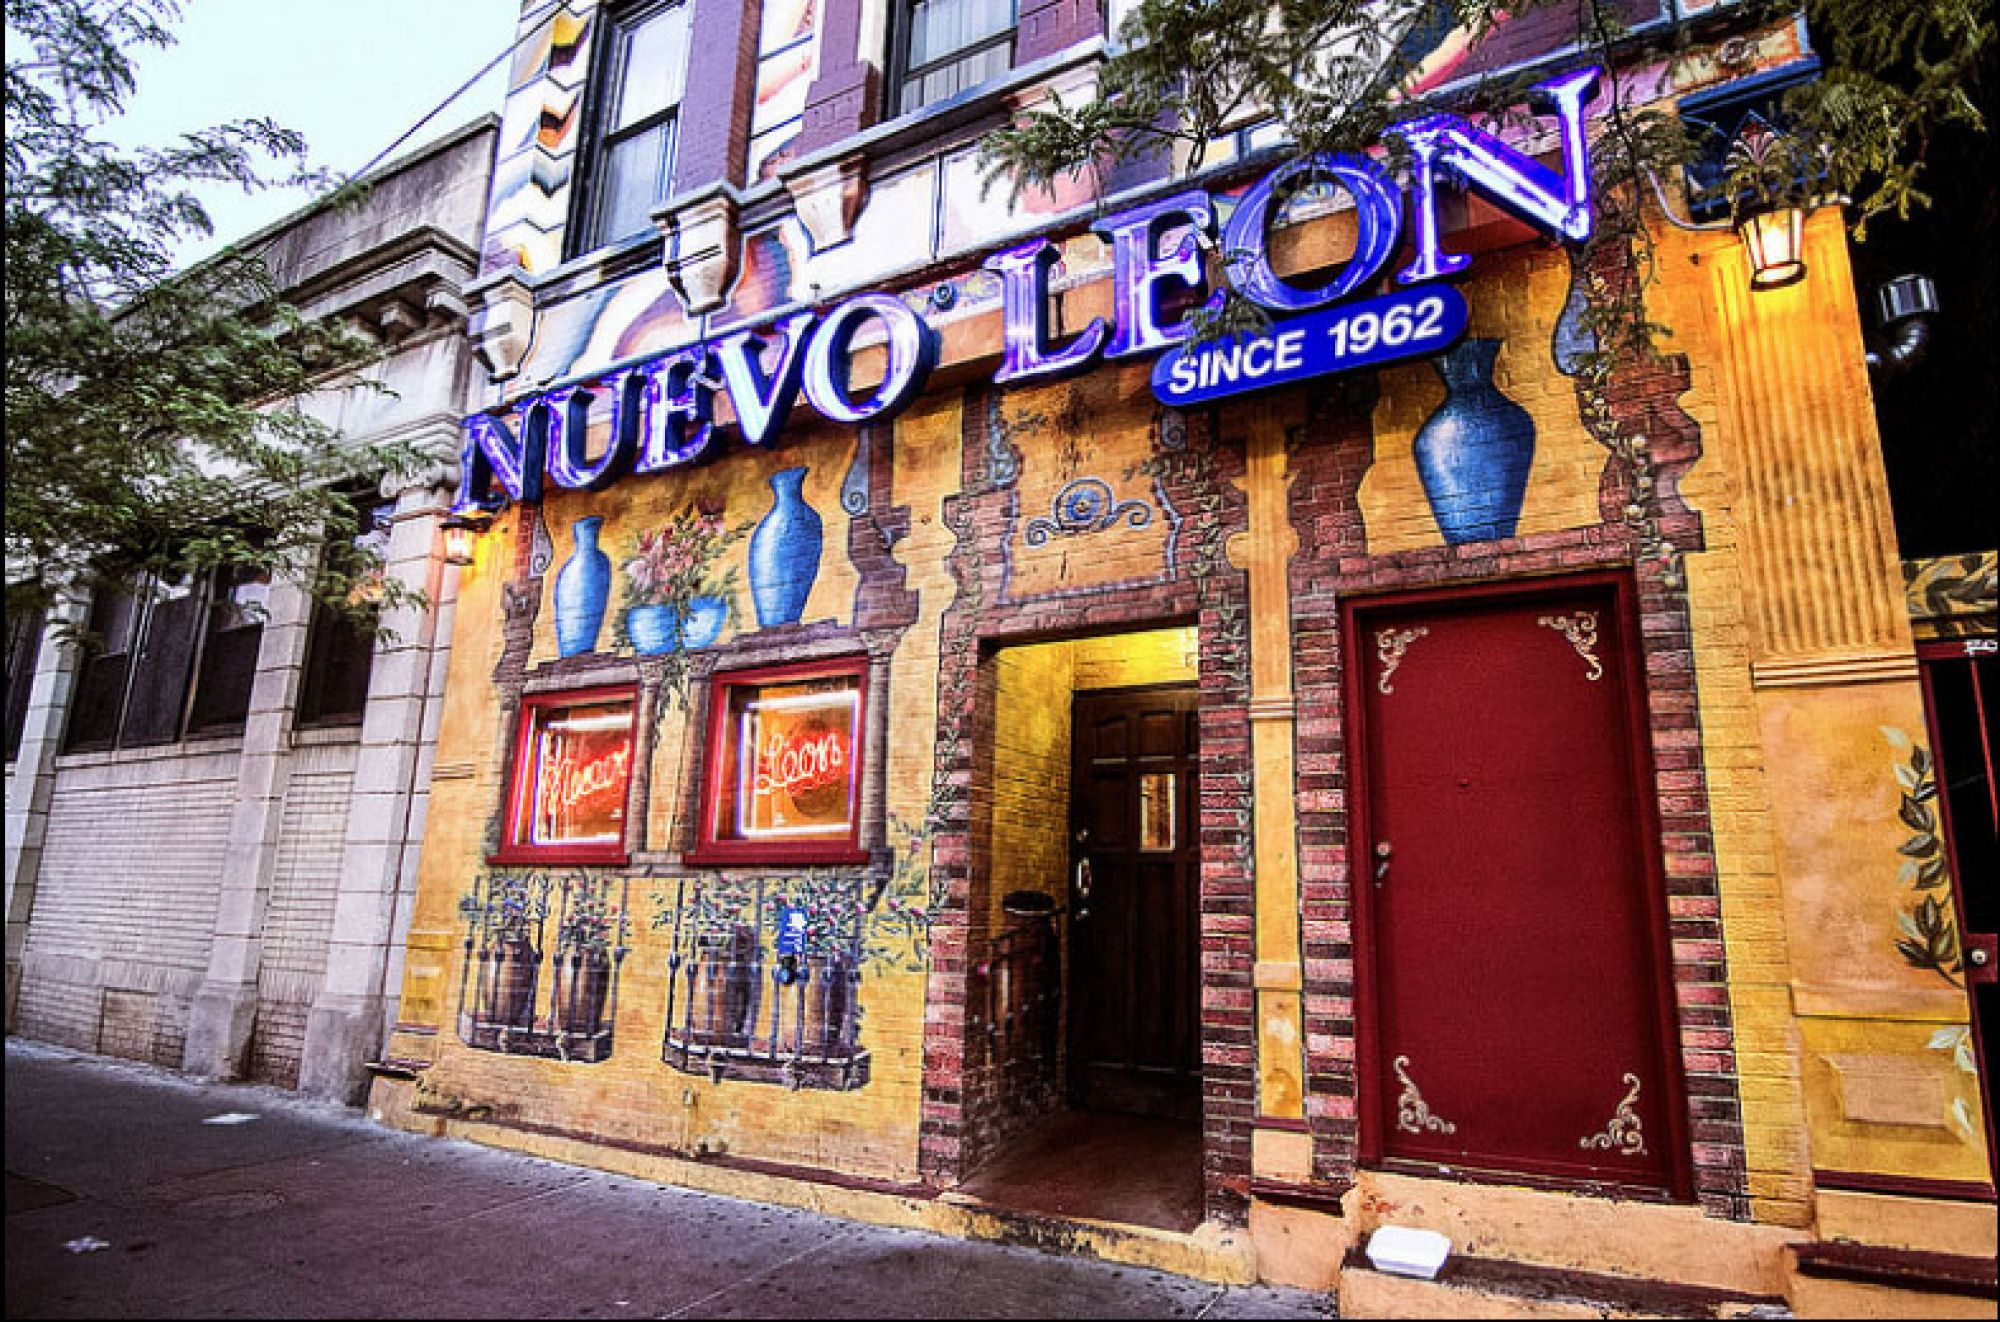 Restaurant Farmhouse Chicago Beloved Chicago Restaurant Nuevo León Was Destroyed In Fire